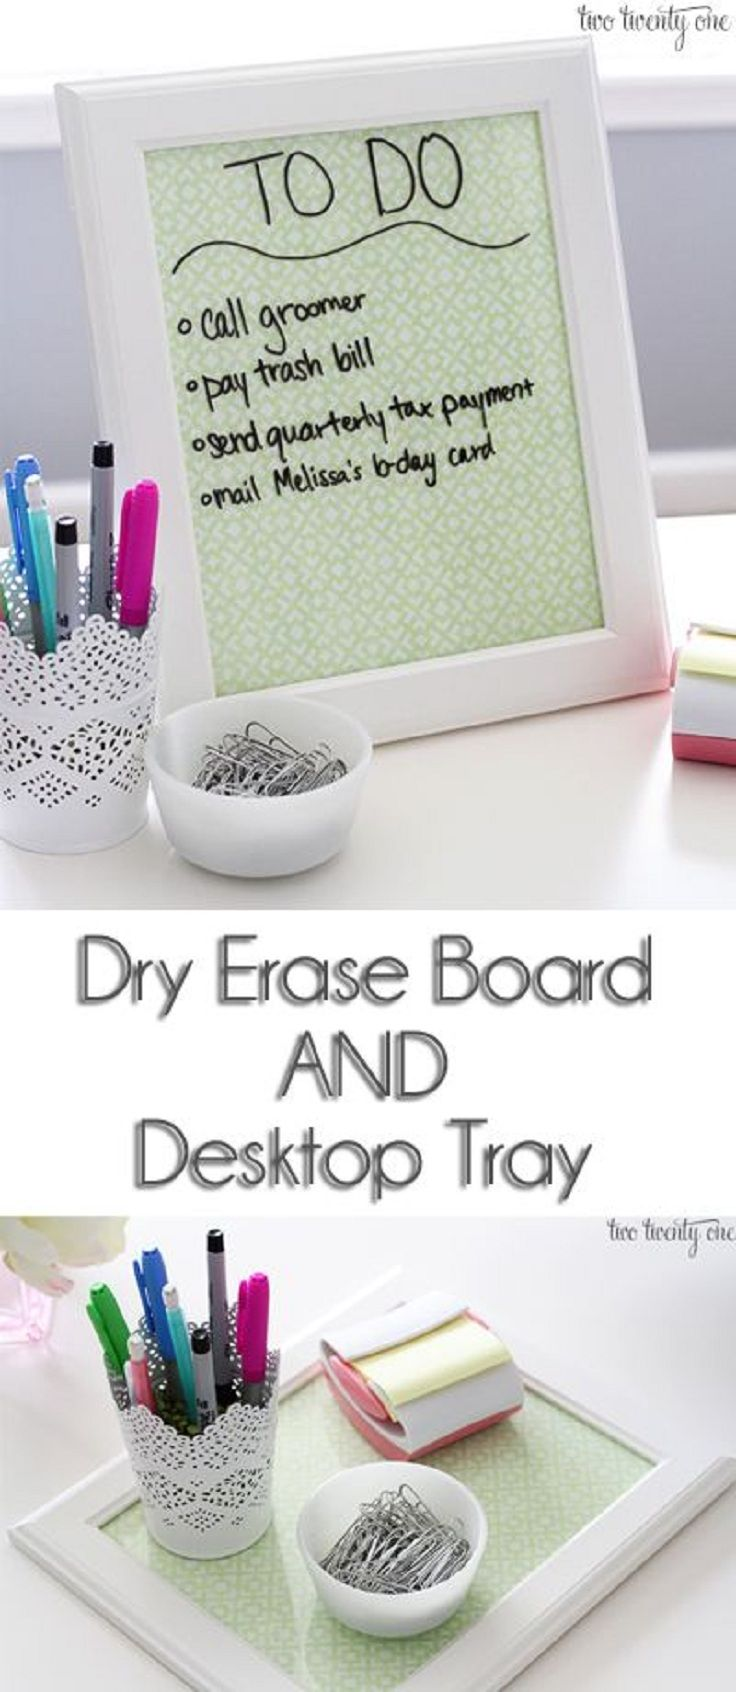 Top 10 diy office organization tutorials studio ideas pinterest office organization diy desk and office decor